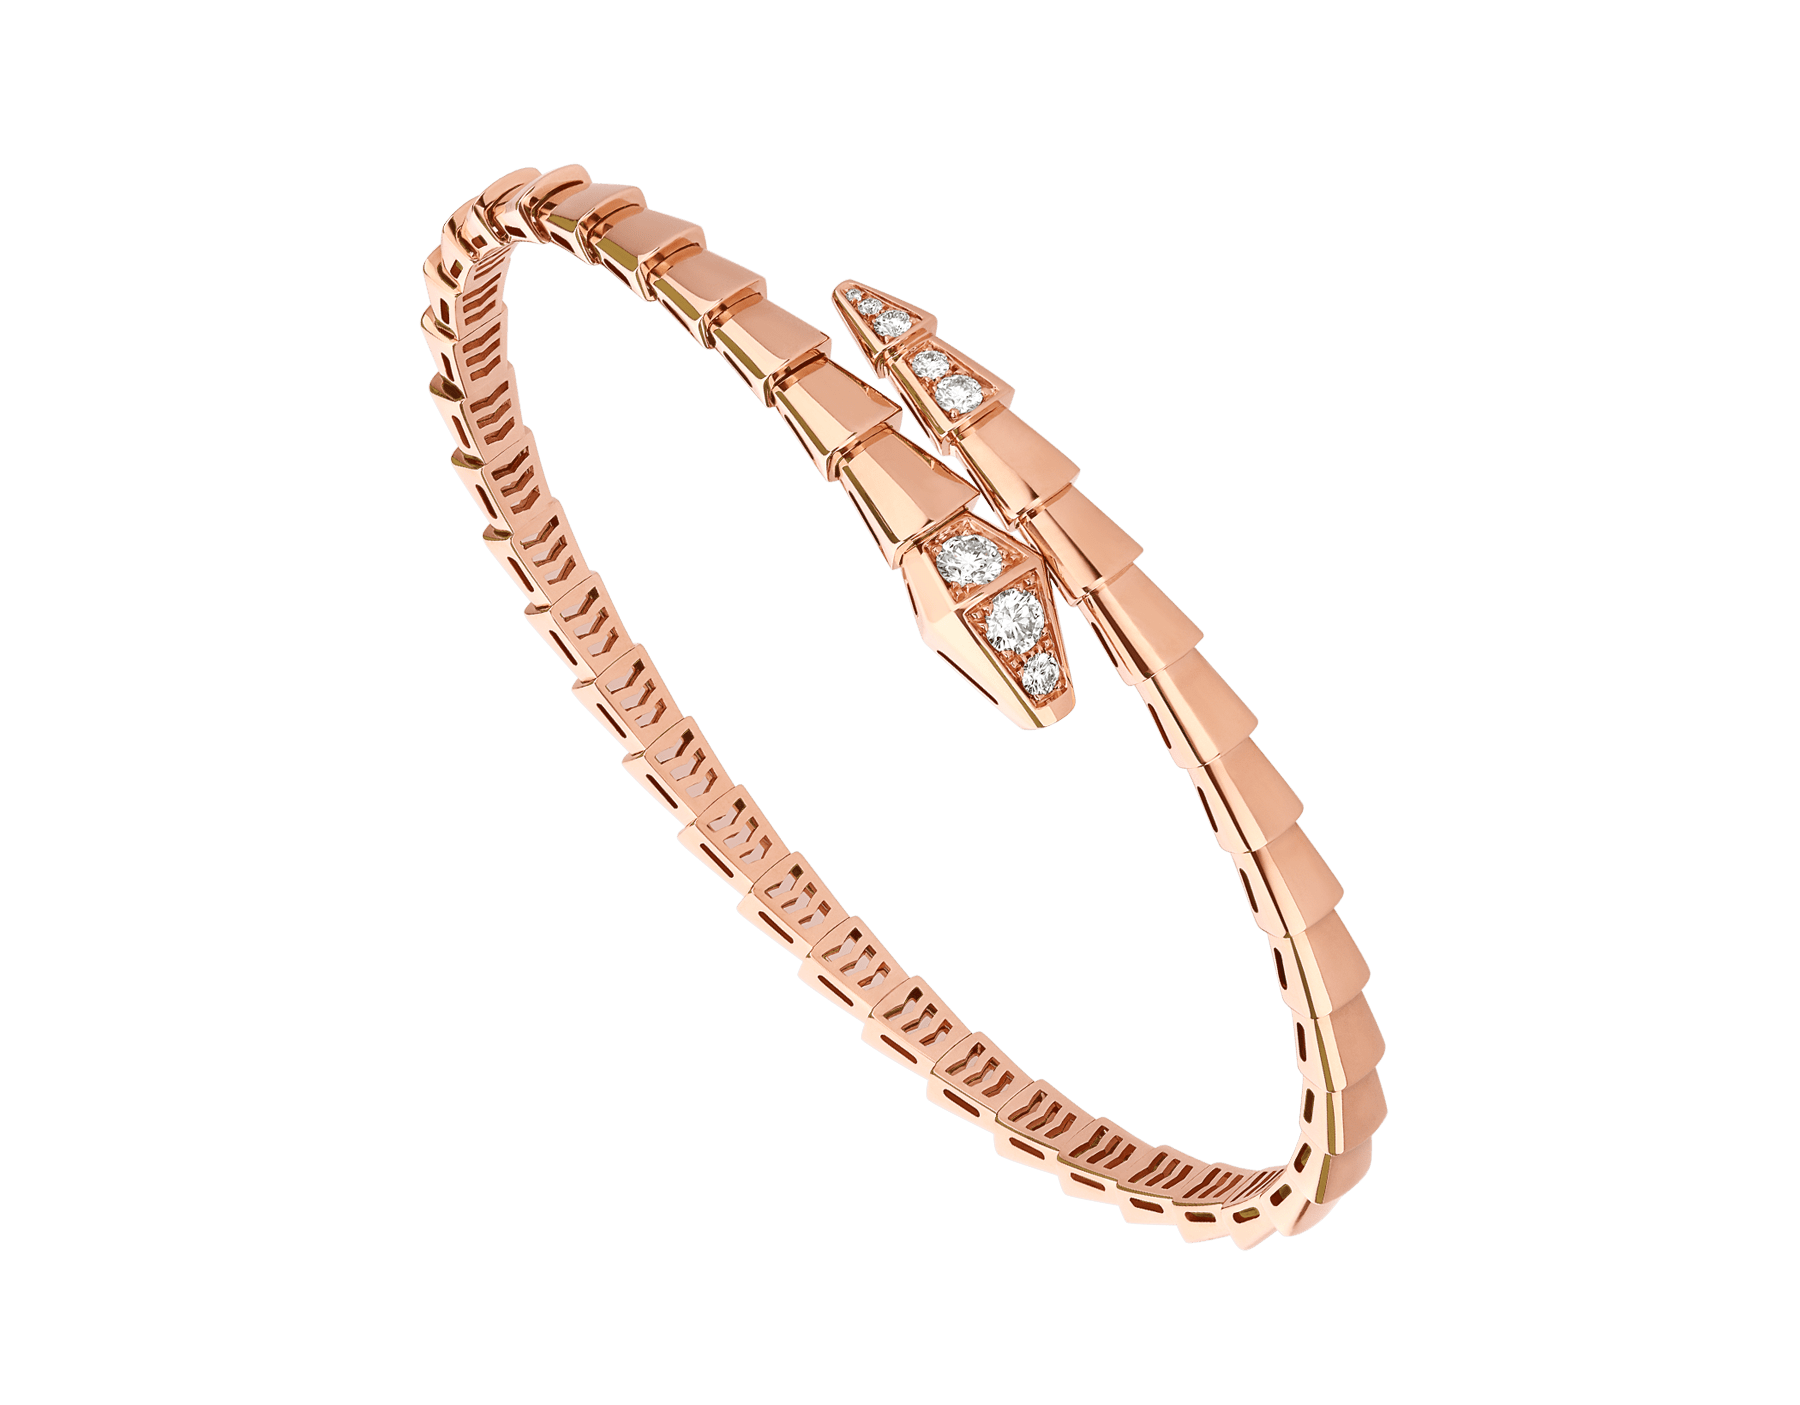 Serpenti Viper 18 kt rose gold bracelet set with demi-pavé diamonds BR858812 image 1